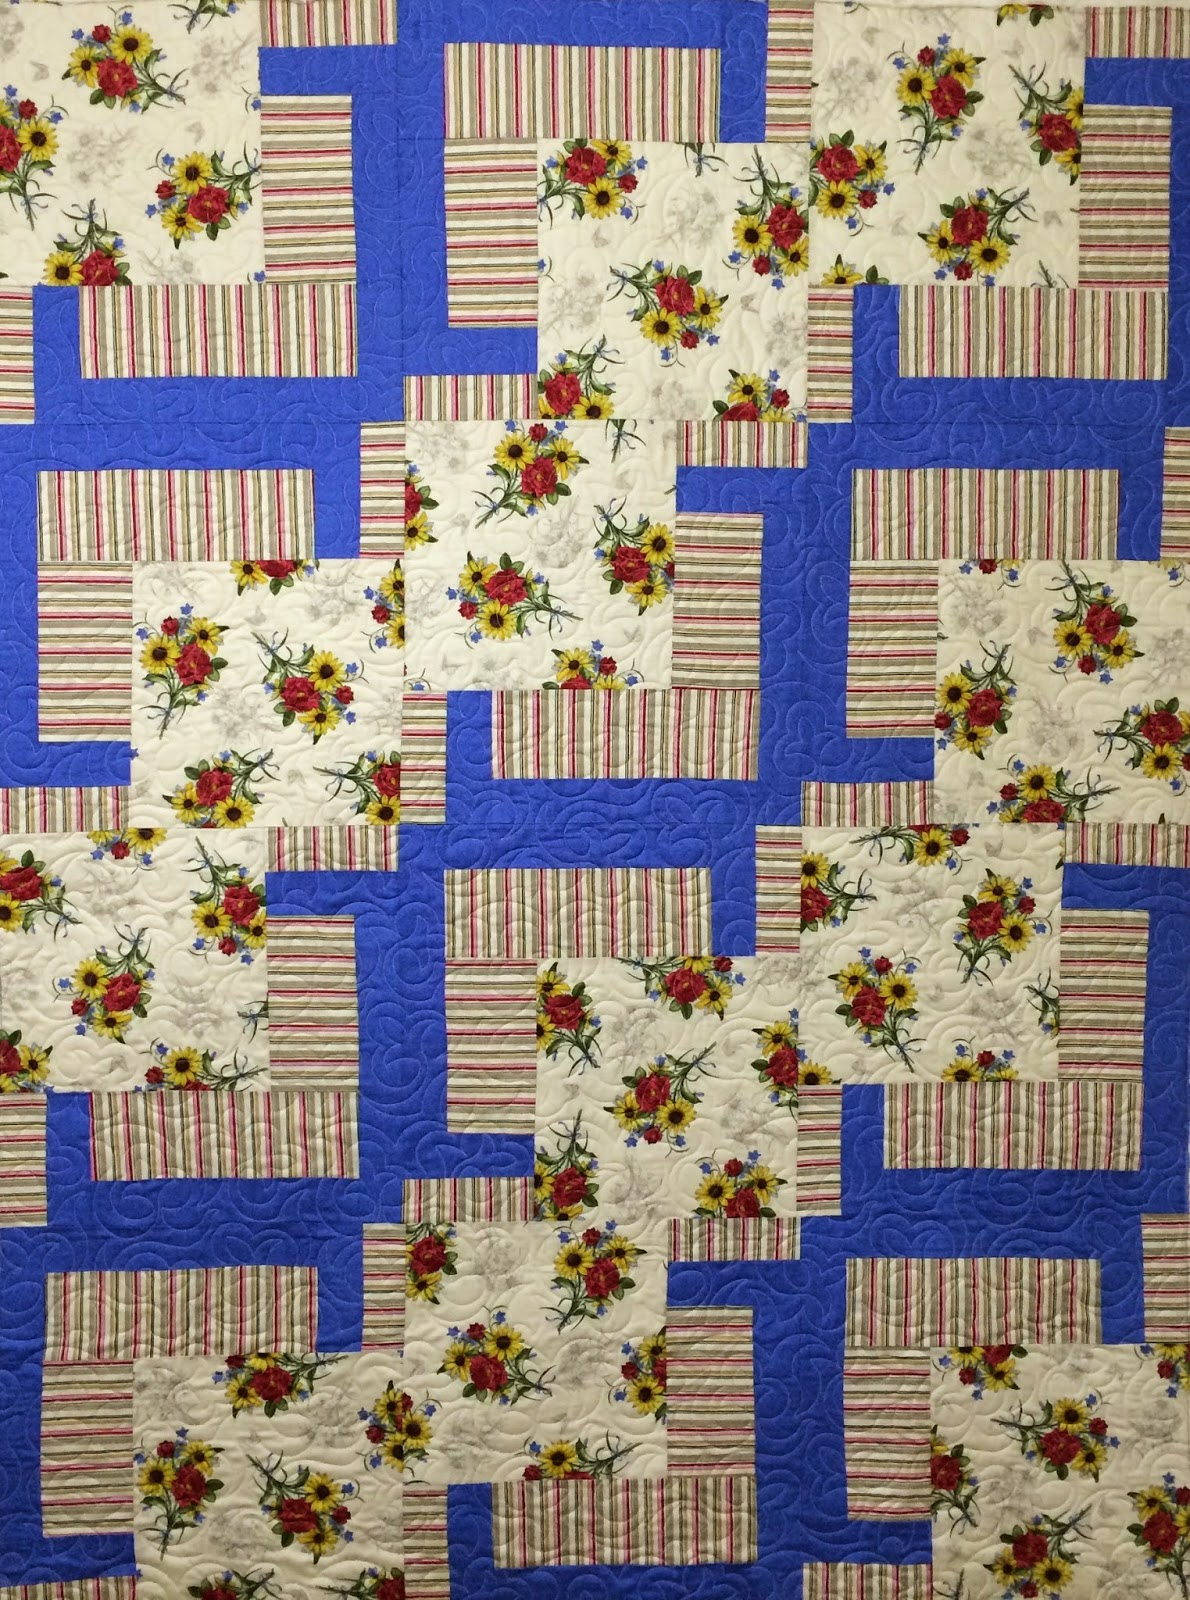 Beth Robertson's Roses with Stripes Quilt